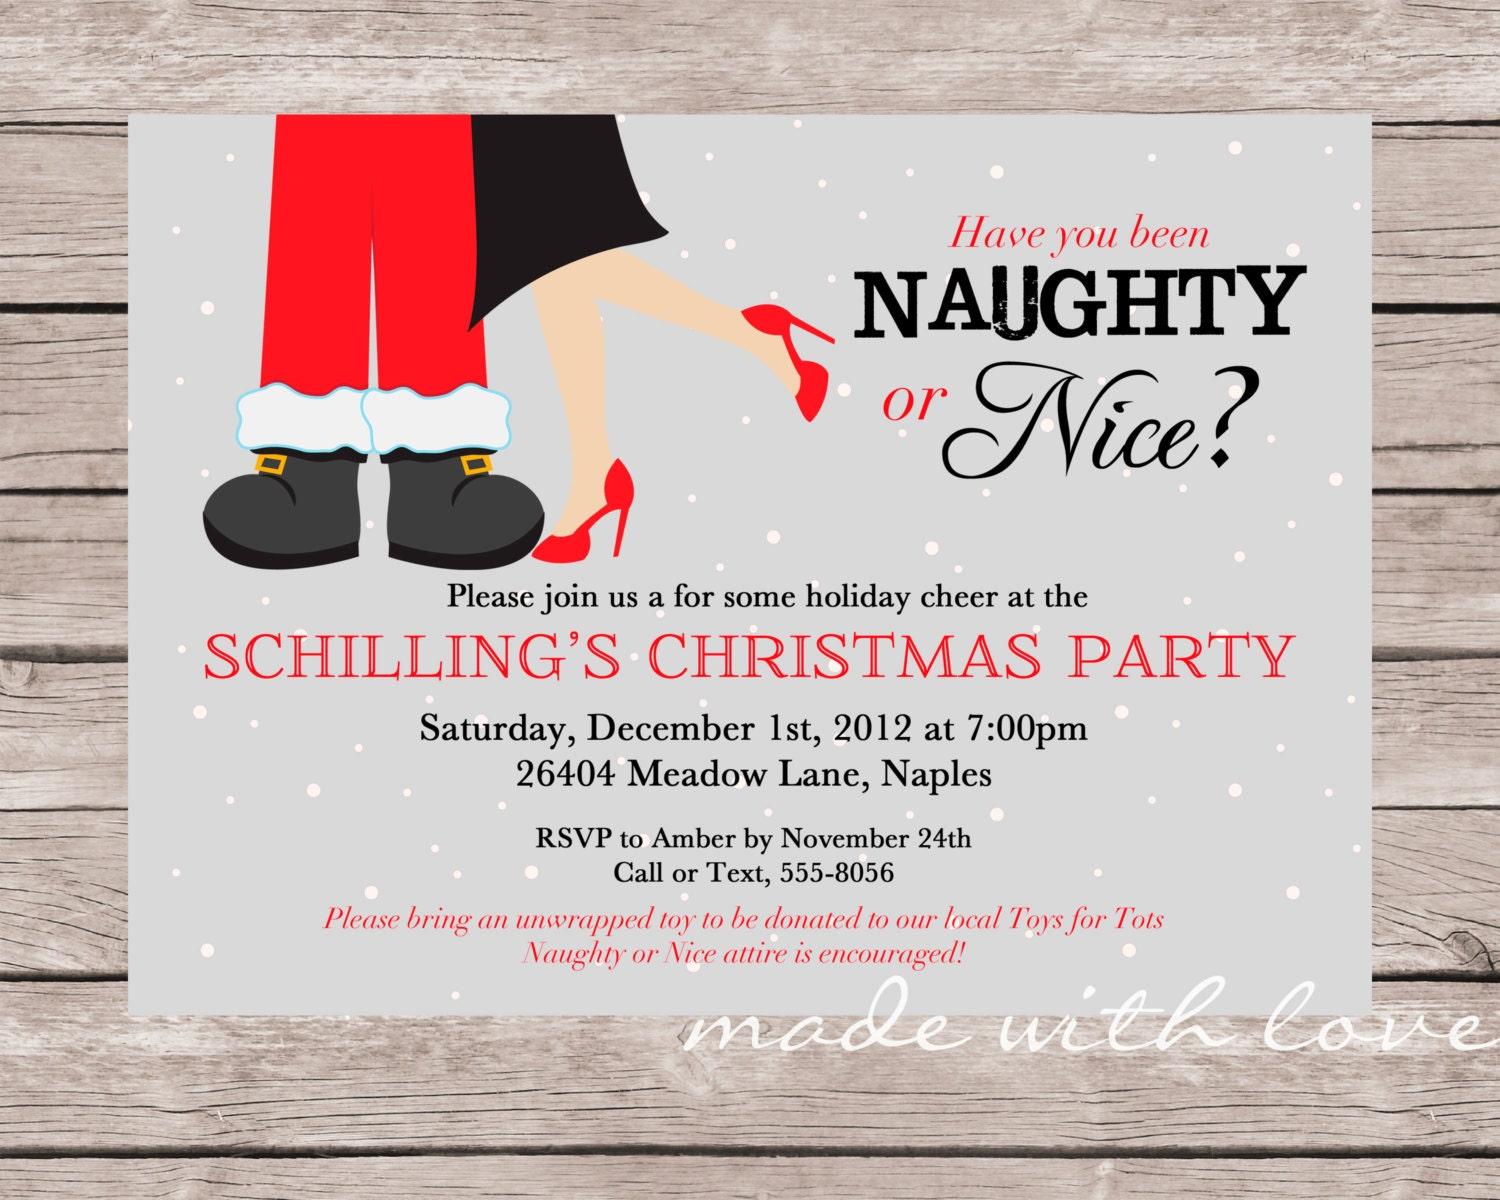 Naughty or Nice-A Christmas/Holiday party invitation 5x7 | Etsy